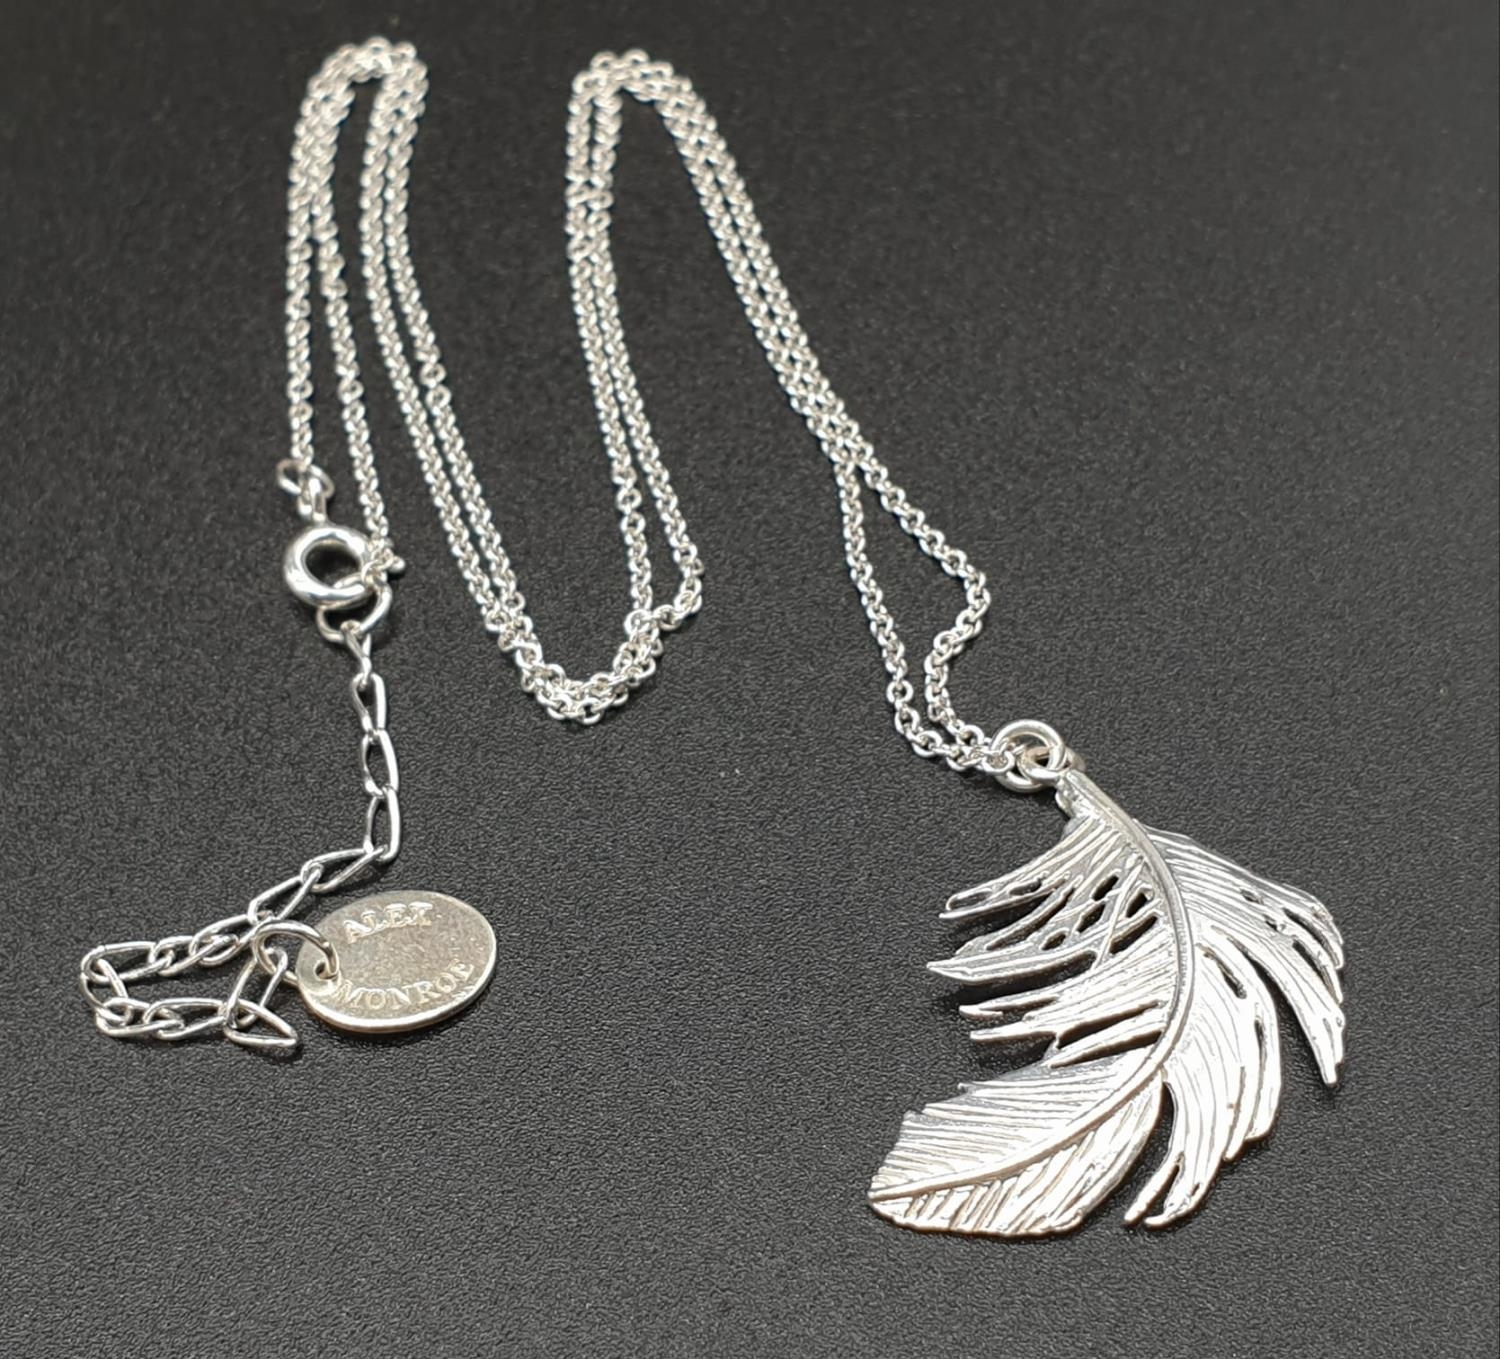 ALEX MONROE STERLING SILVER BIG FEATHER PENDANT ON EXTENDABLE NECKLACE